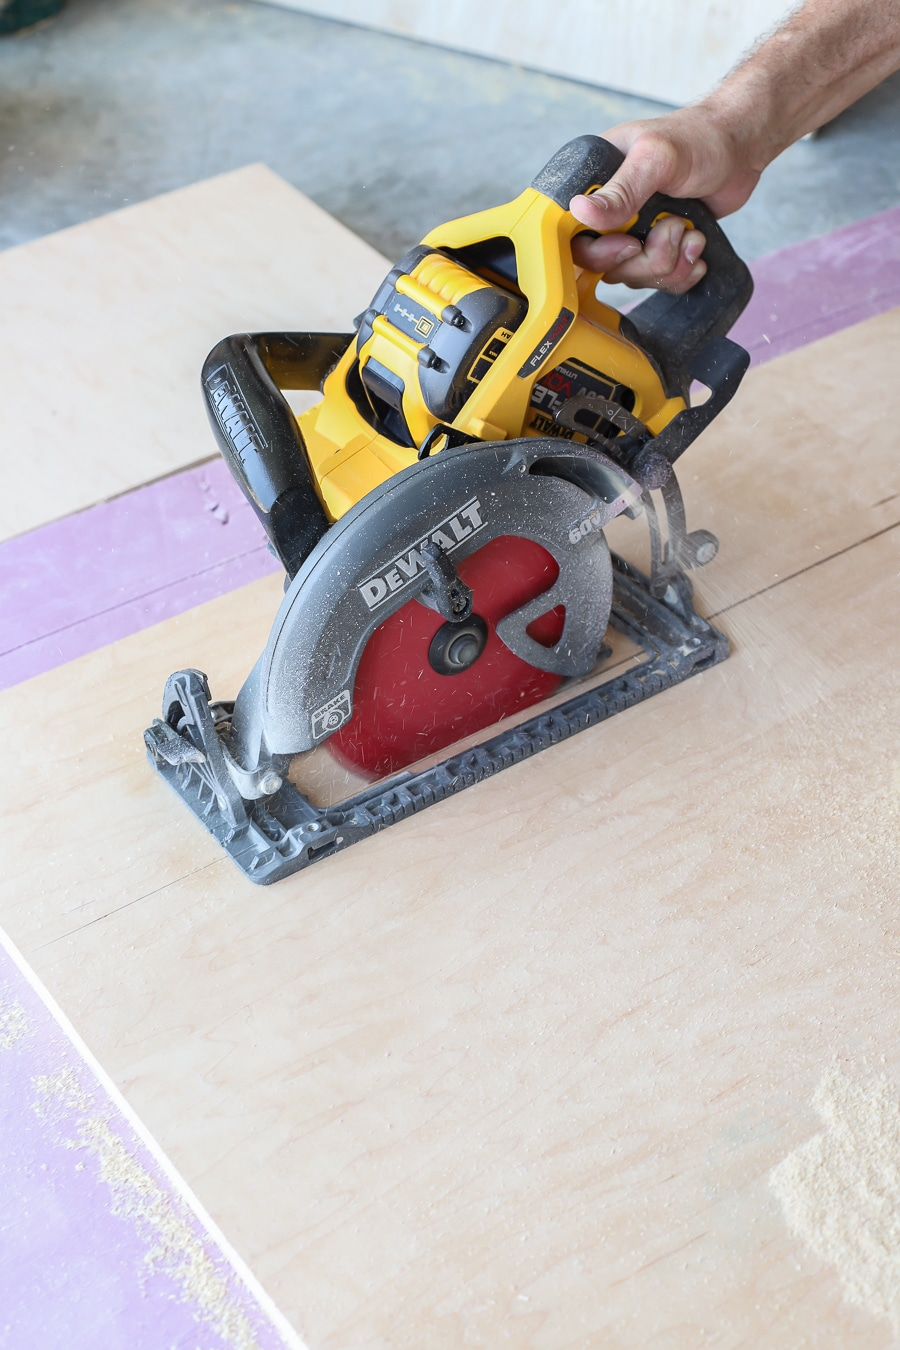 Dewalt worm drive style circular saw with diablo framing blade